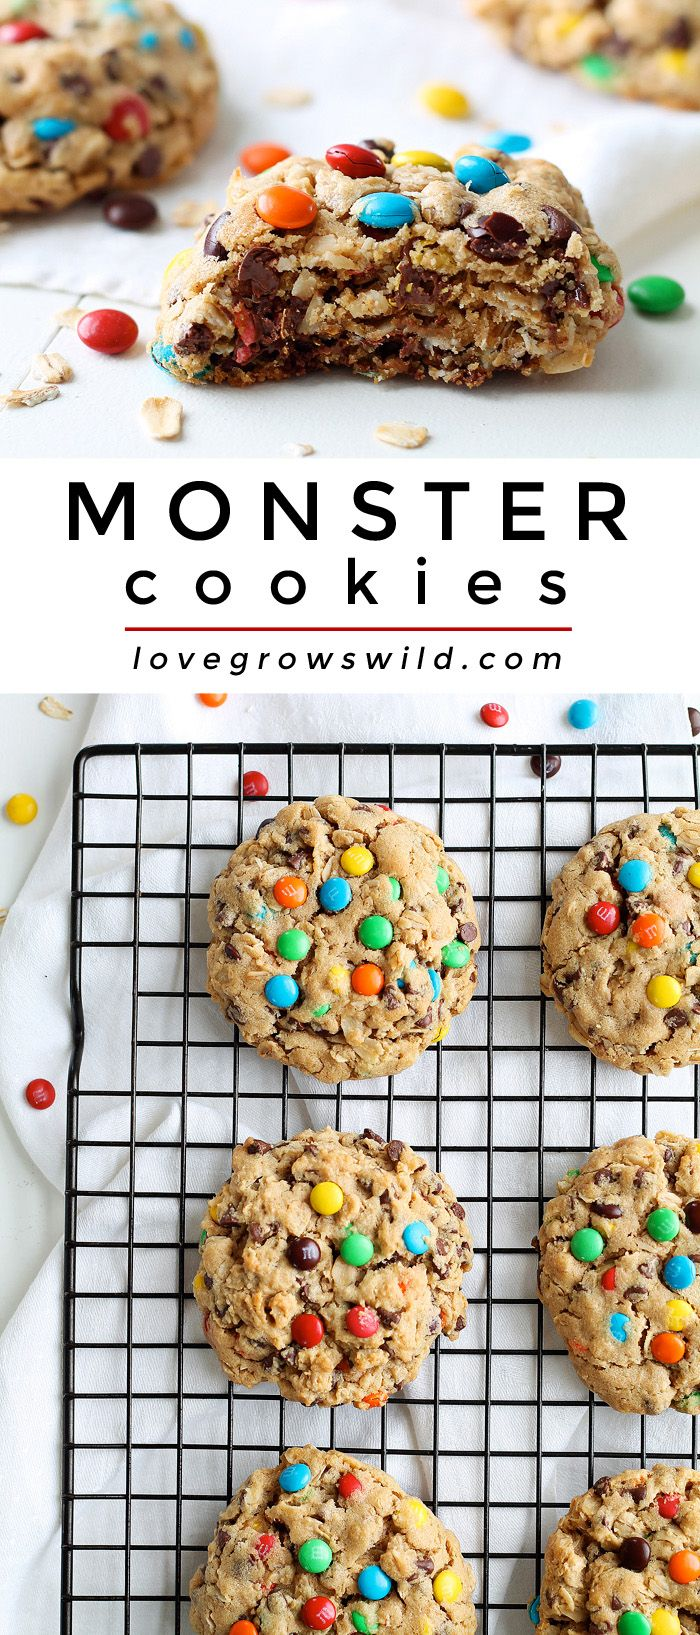 Big, chewy peanut butter cookies loaded with sweet chocolate chips, M&M candies, and oats! Get the recipe at LoveGrowsWild.com